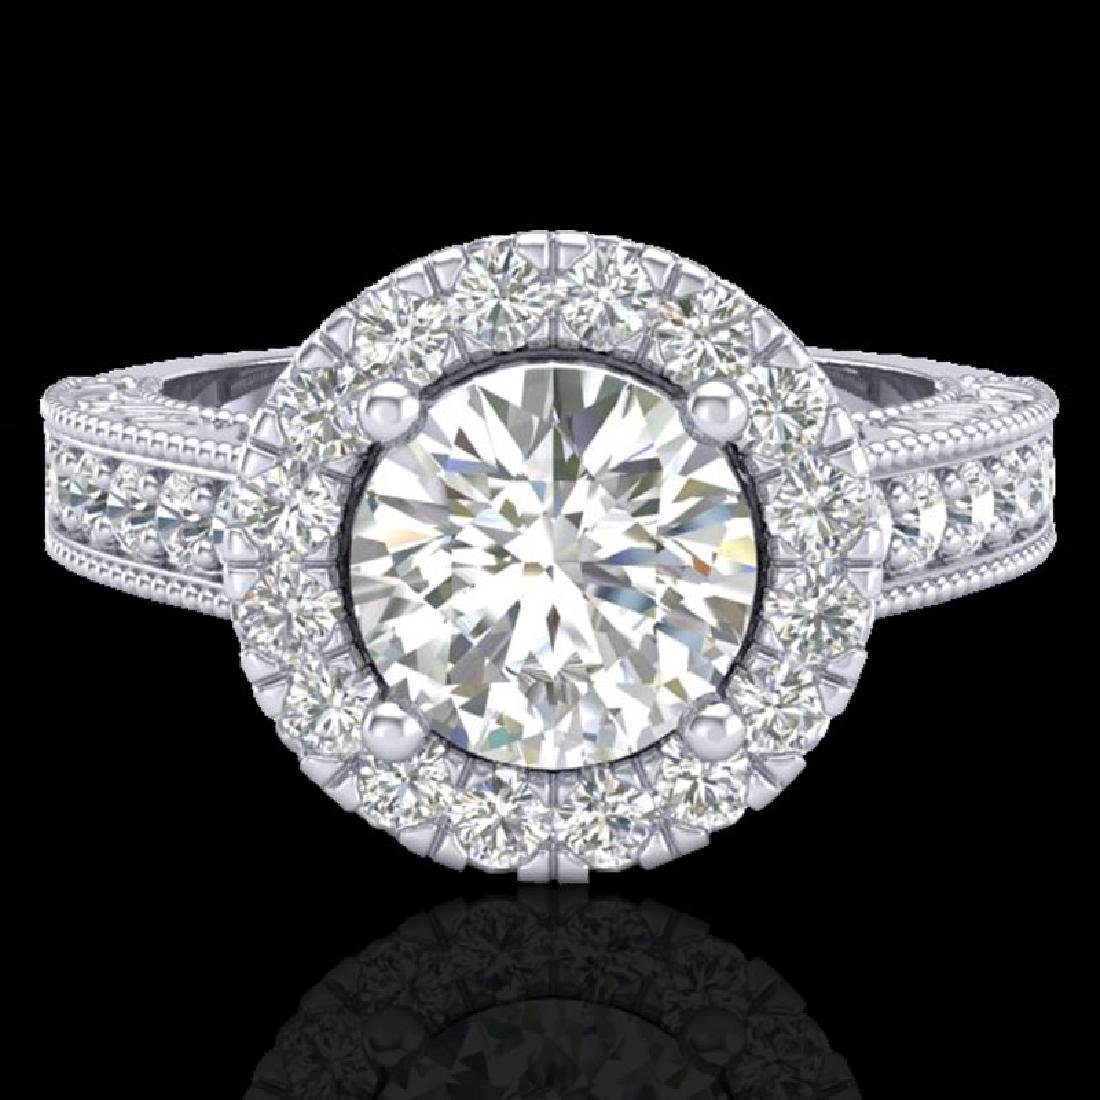 2.25 CTW Vintage Solitaire VS/SI Diamond Halo Ring 14K